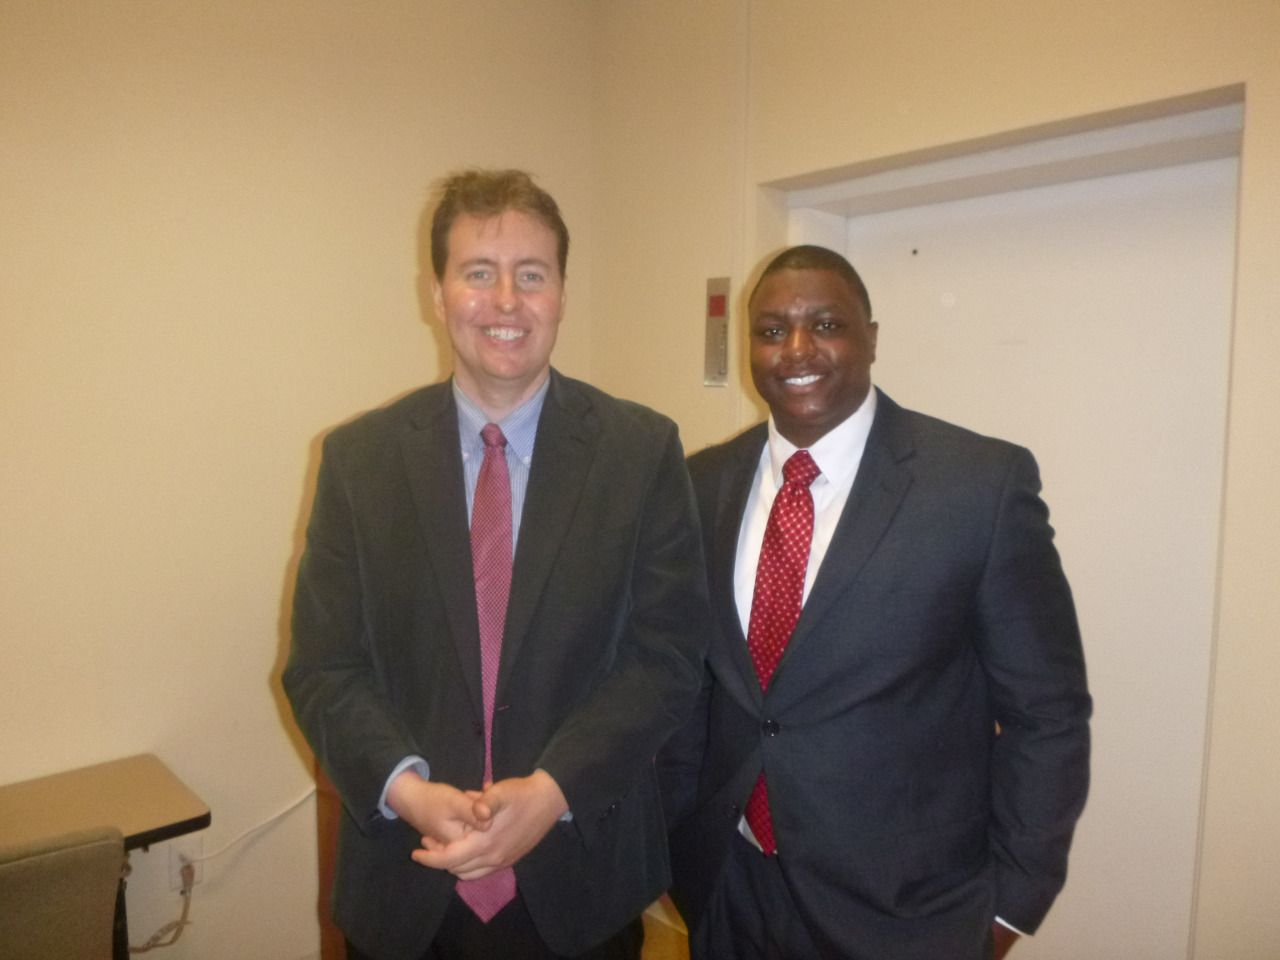 Evan Guthrie Law Firm News Law Life New Law Law Firm Guthrie